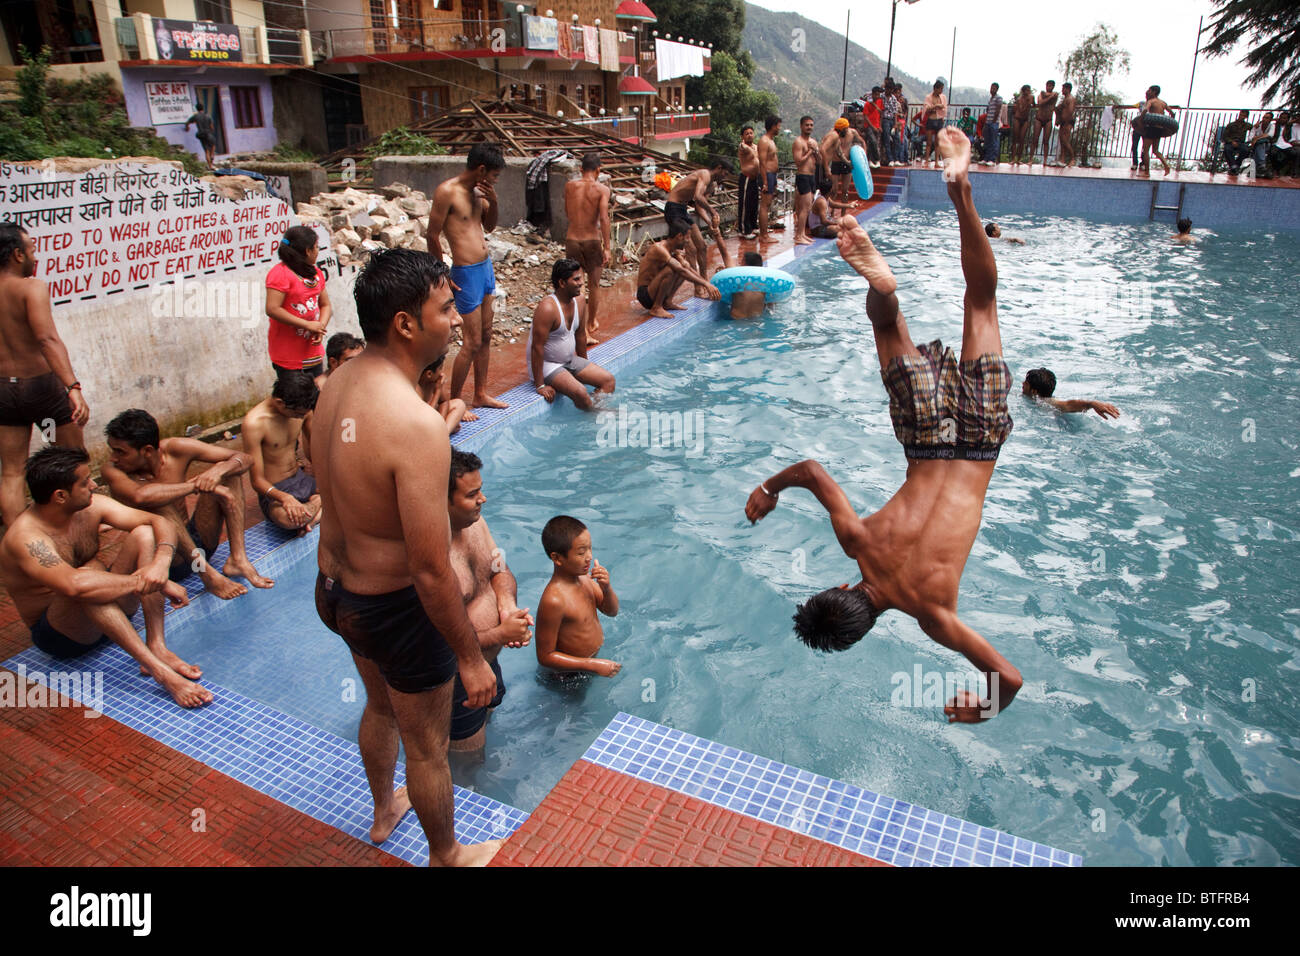 37d4ff2b2a A group of young men jumping into the public swimming pool in Bhagsu,  Mcleod Ganj